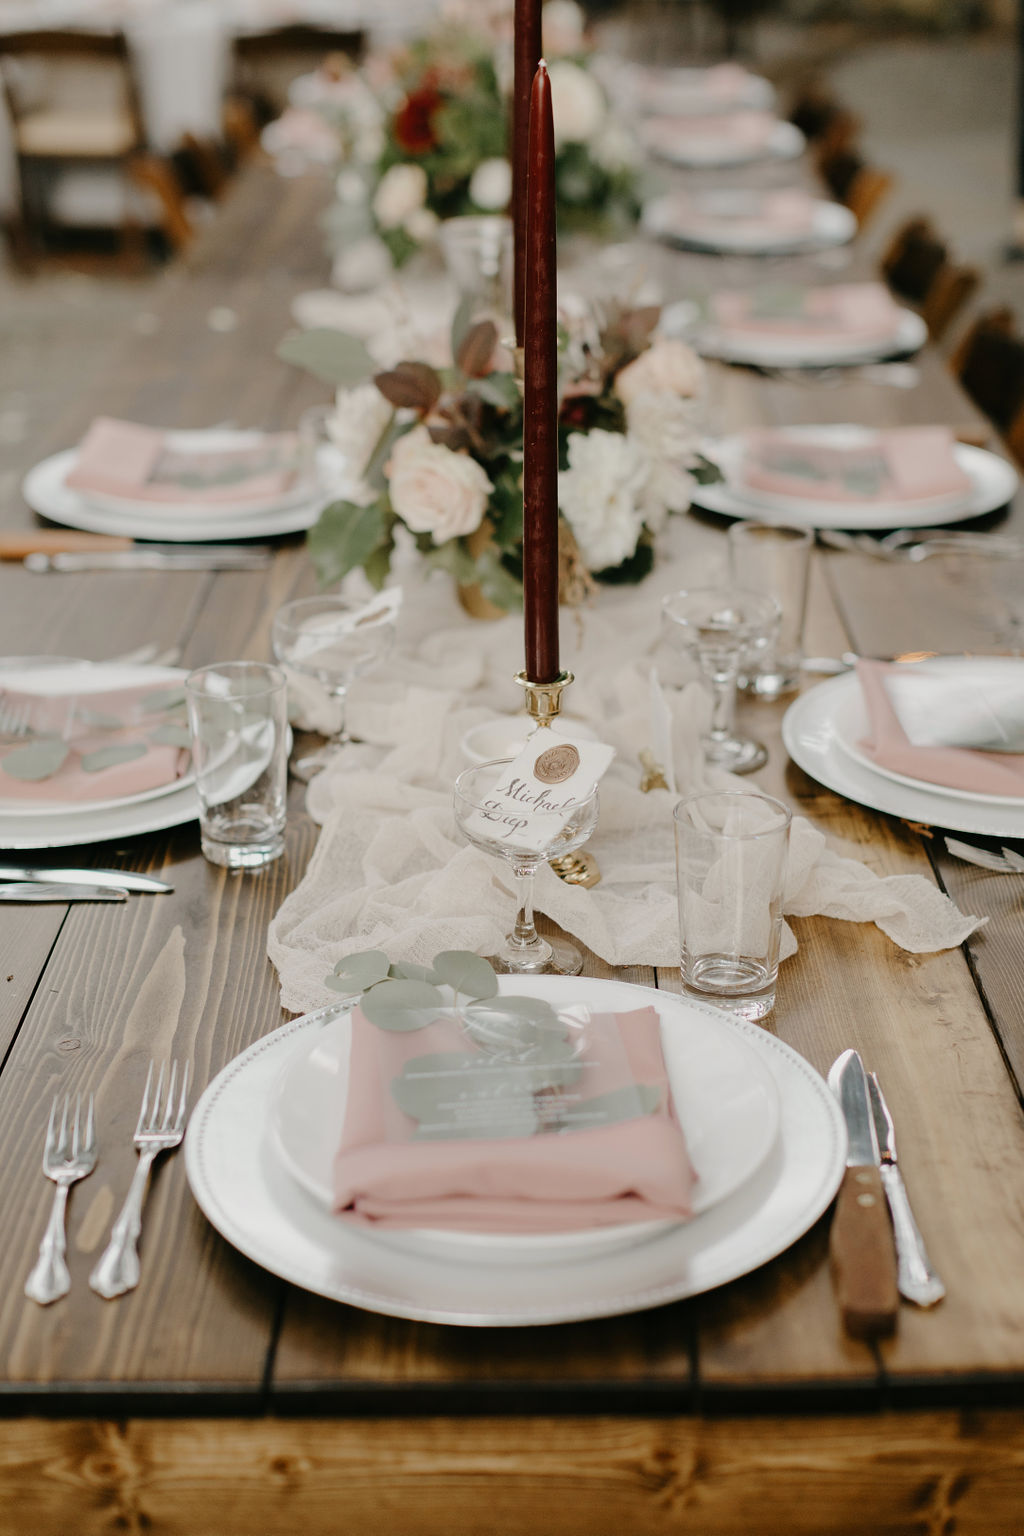 Deer Park Villa Wedding Planner Perfectly Planned Moments Nirav Patel Photography Bellevue Floral Co Farm Table Candles.JPG